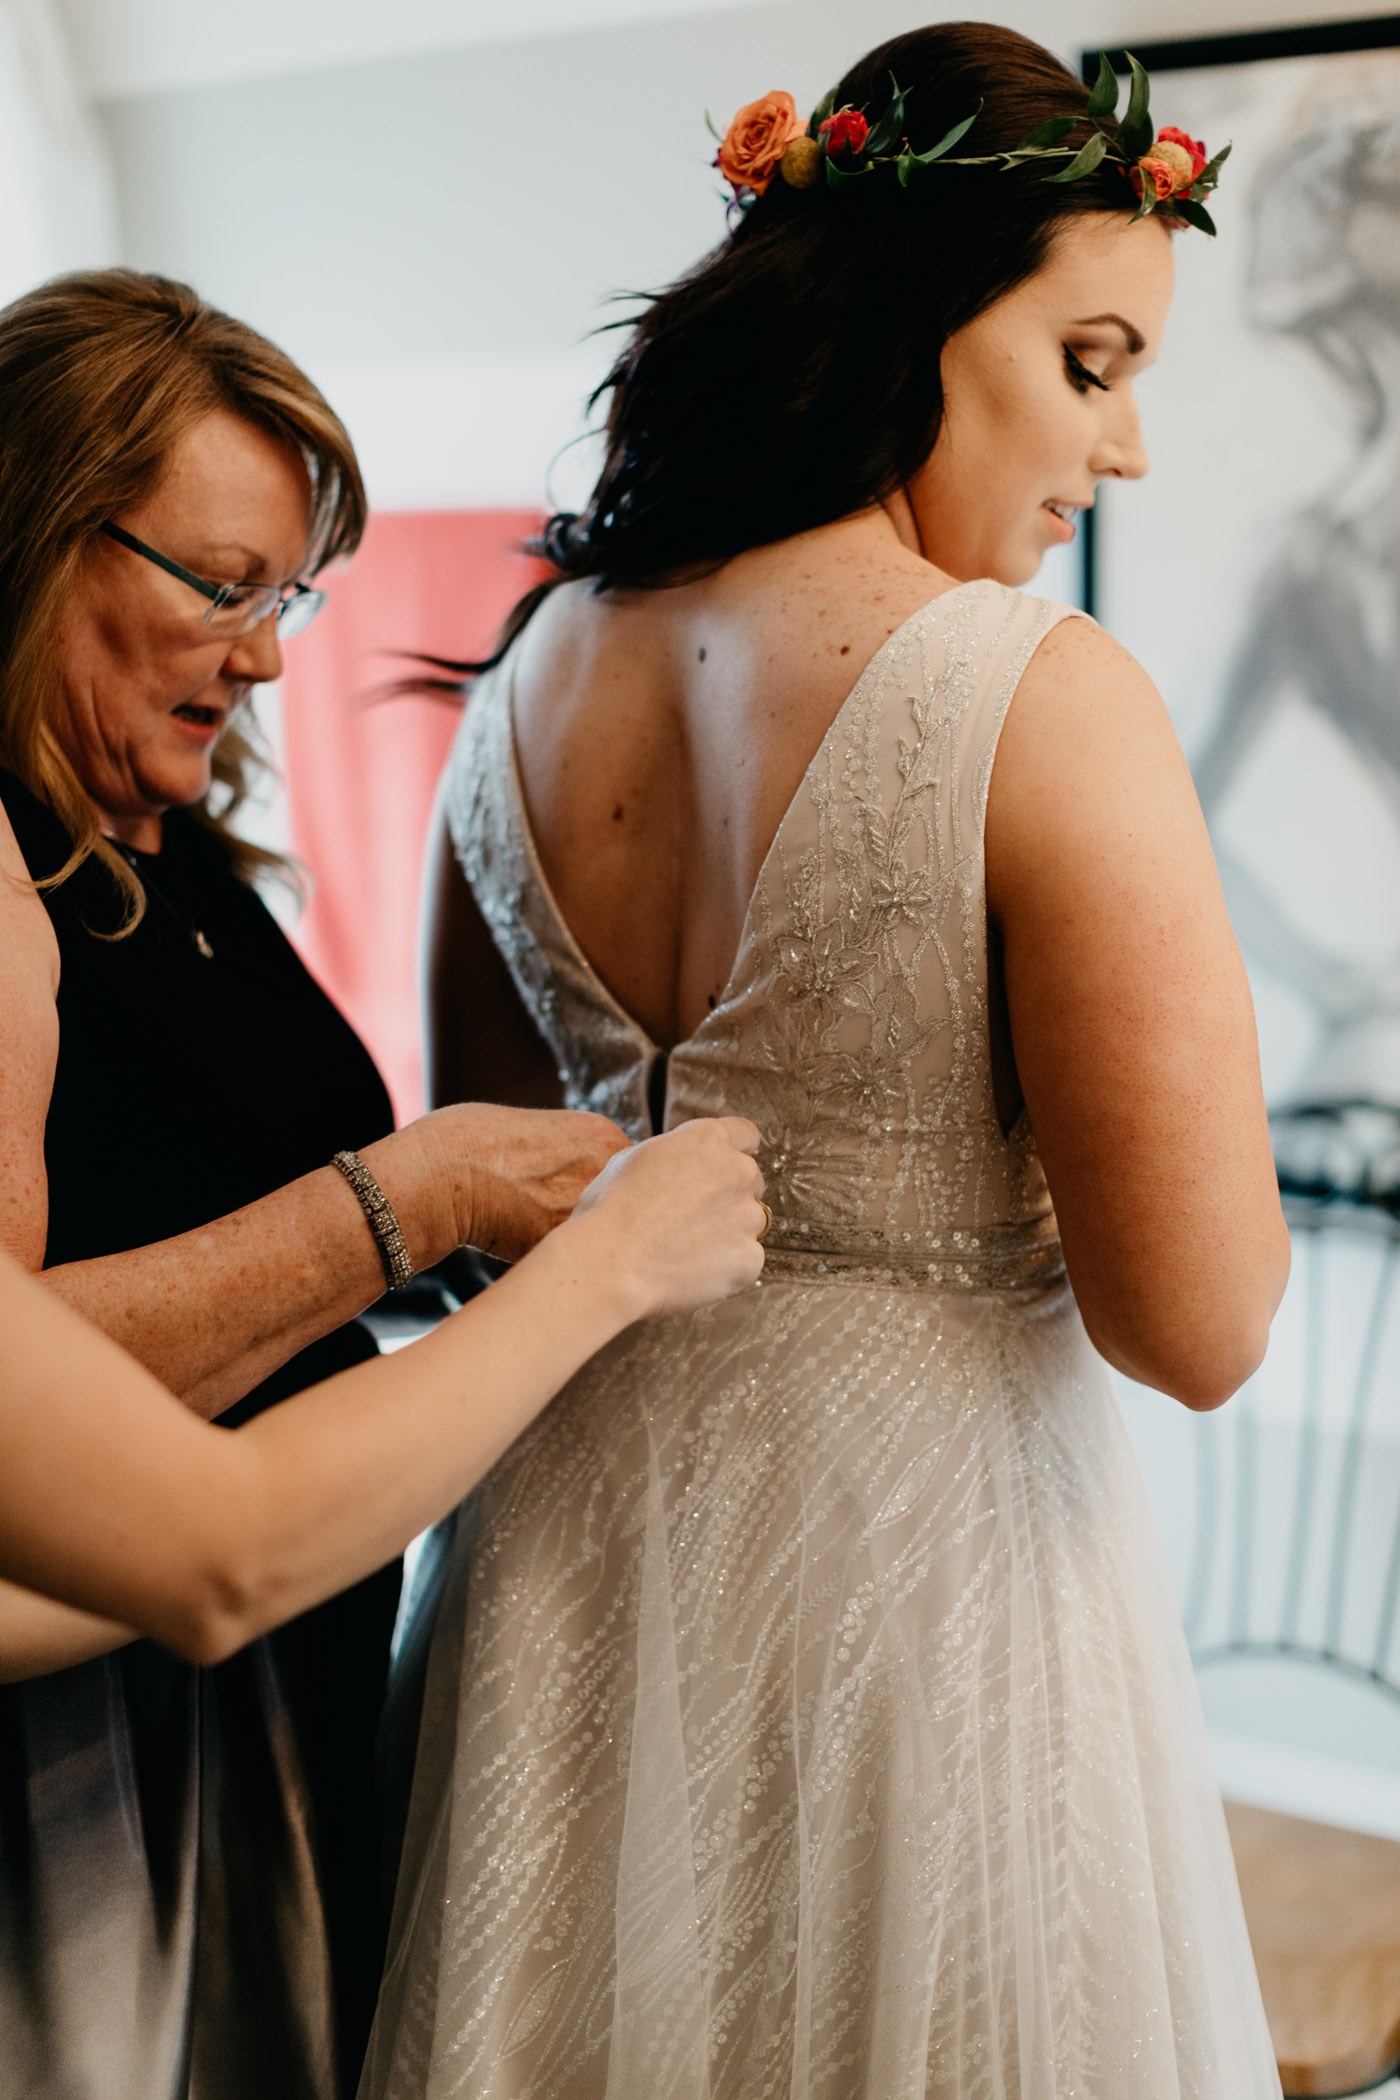 Brides mom zipping her dress on her wedding day